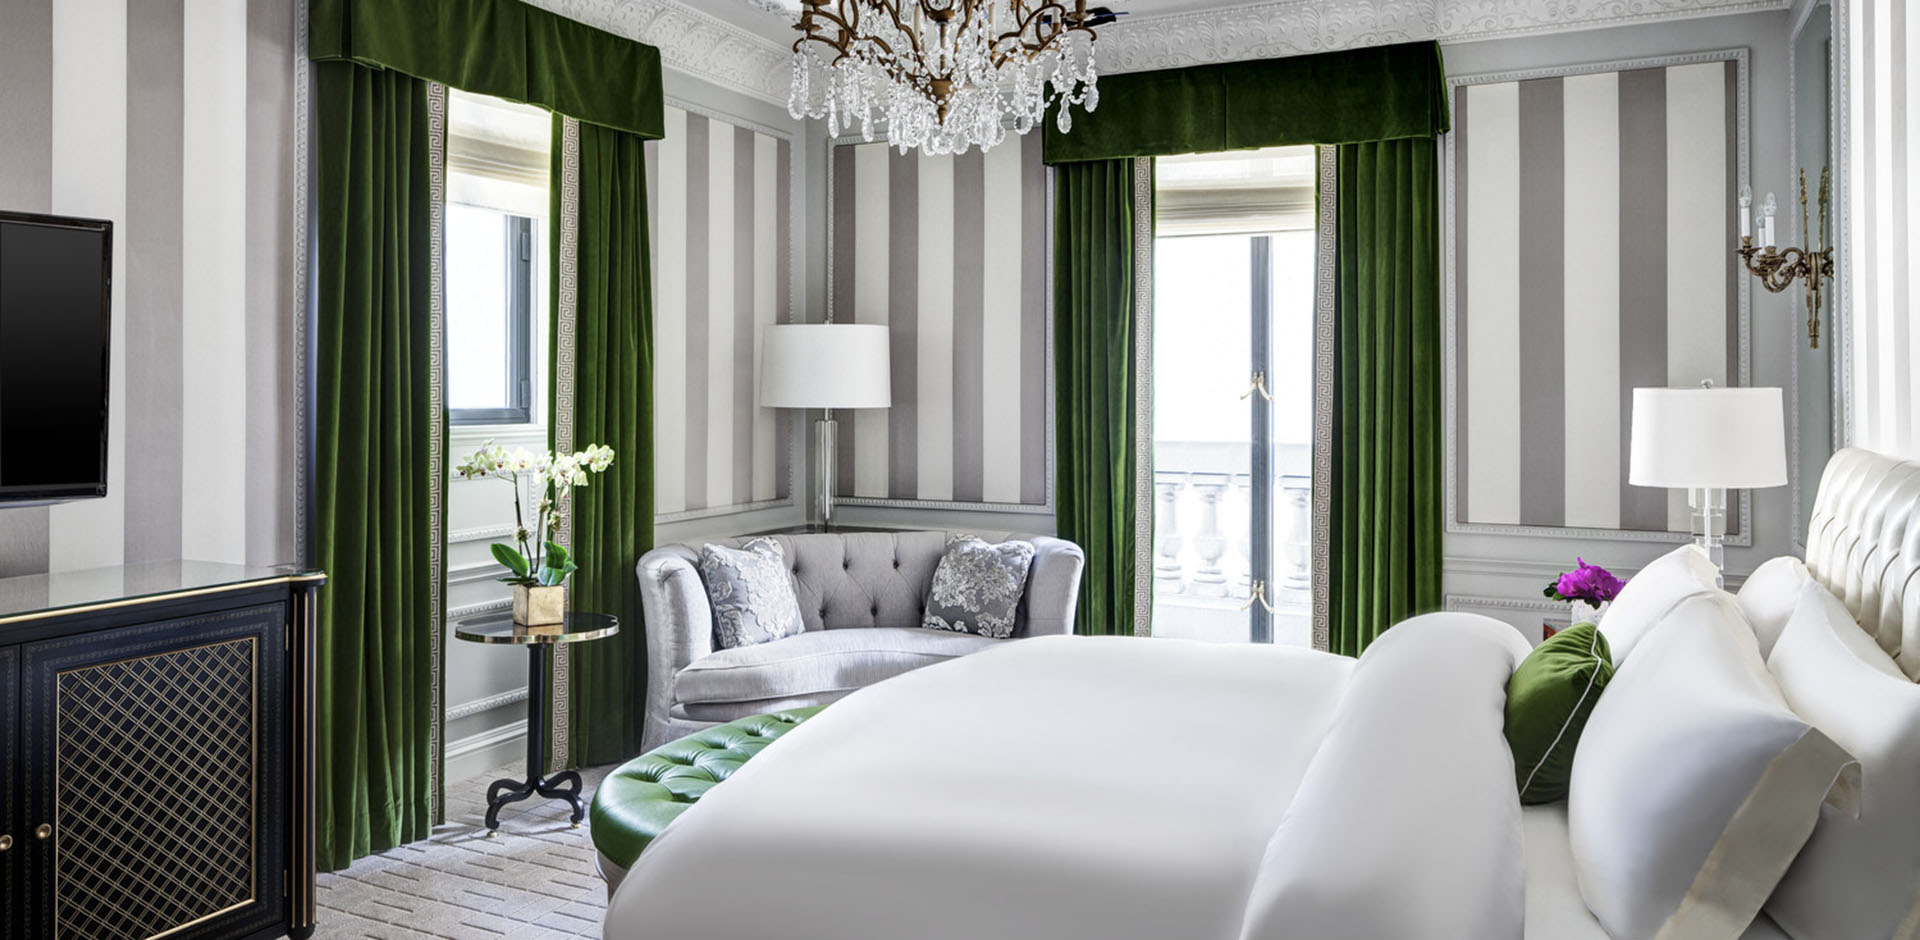 St Regis, New York - Presidential Suite Bedroom